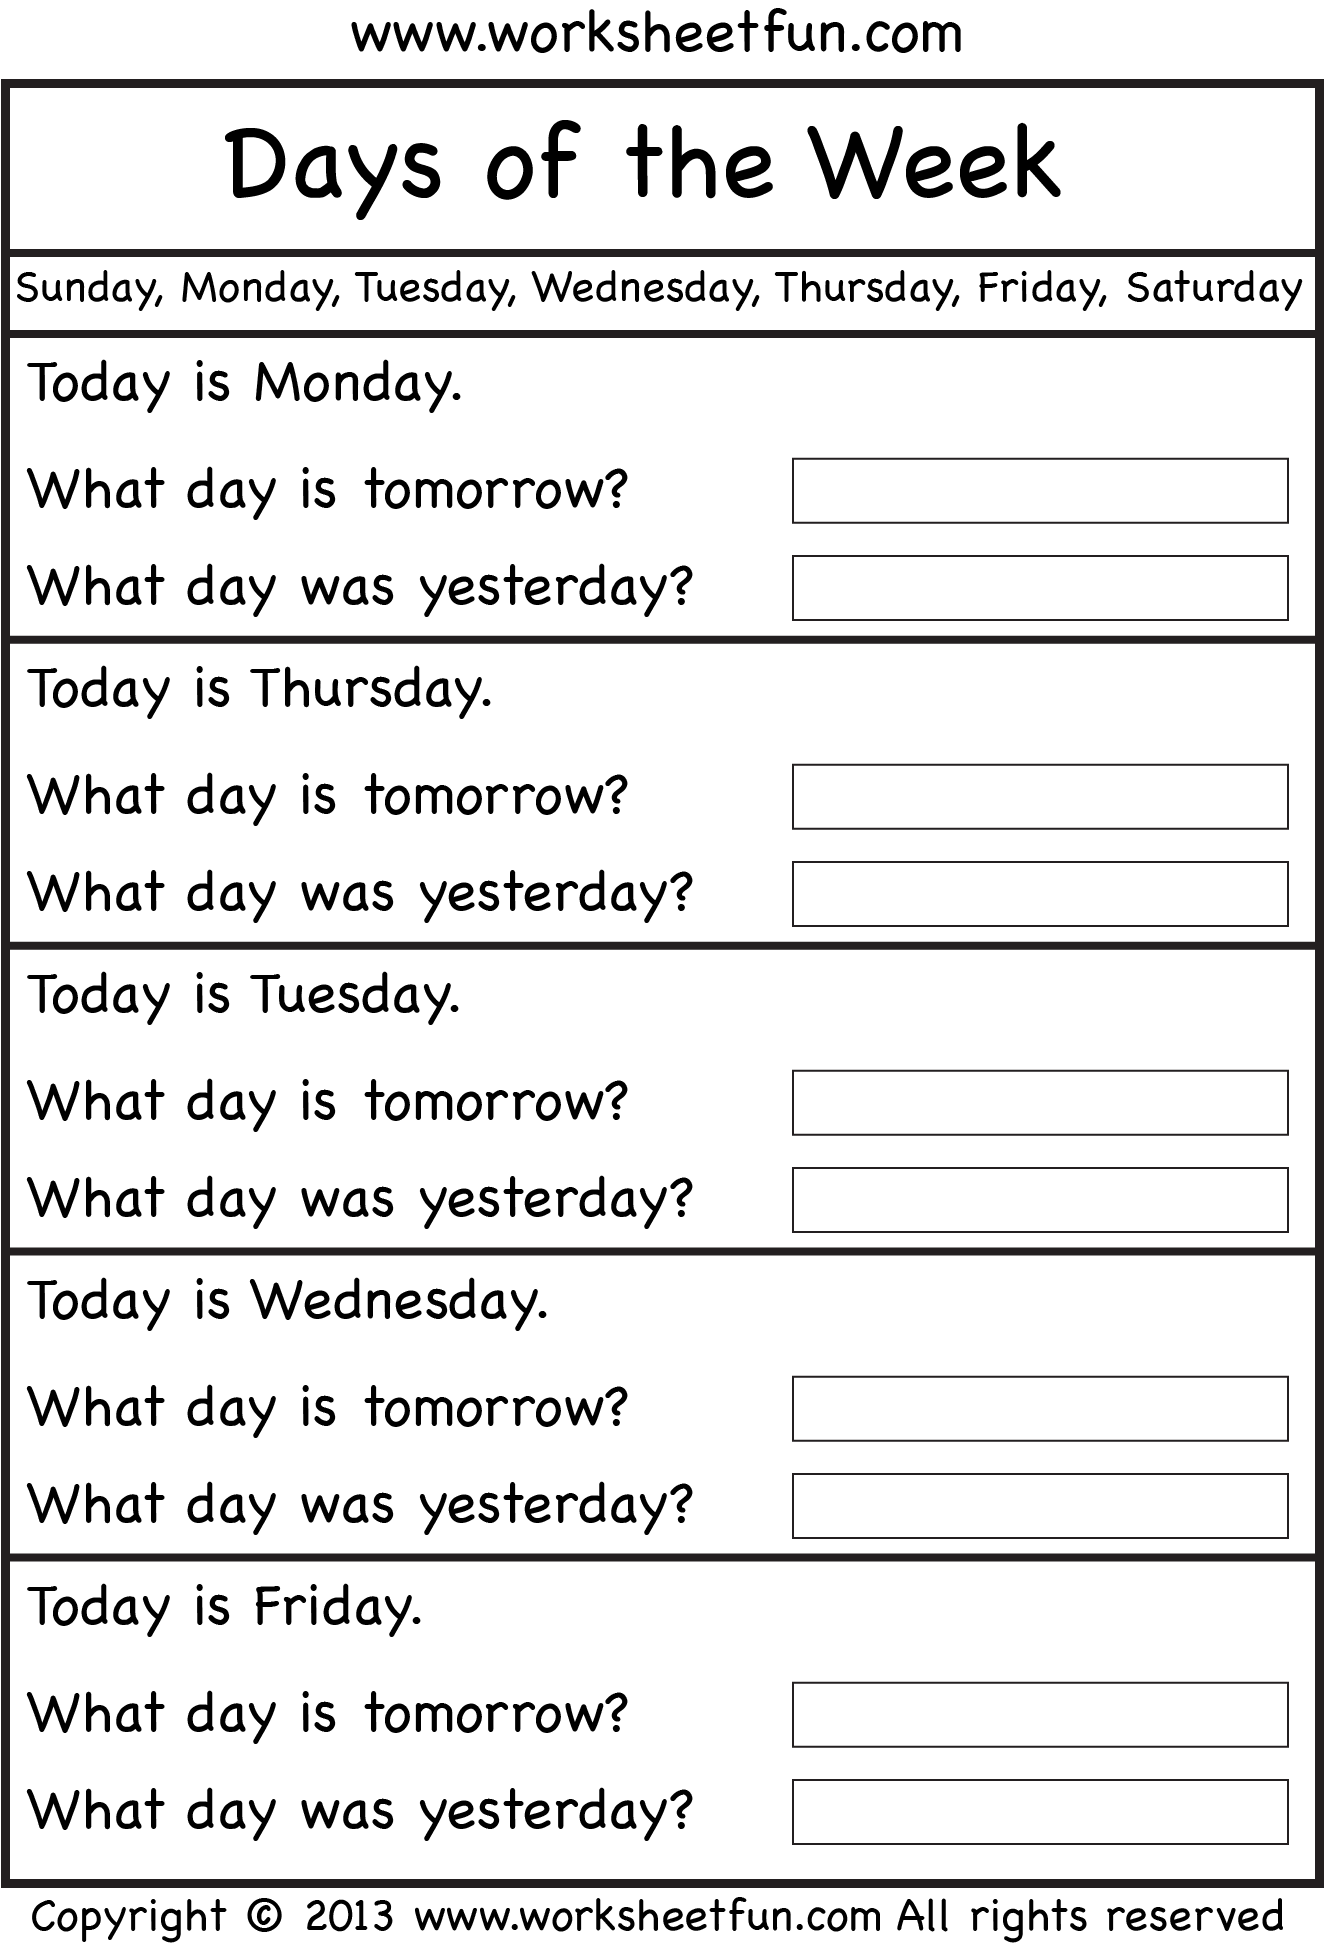 Nifty image in days of the week printable worksheets